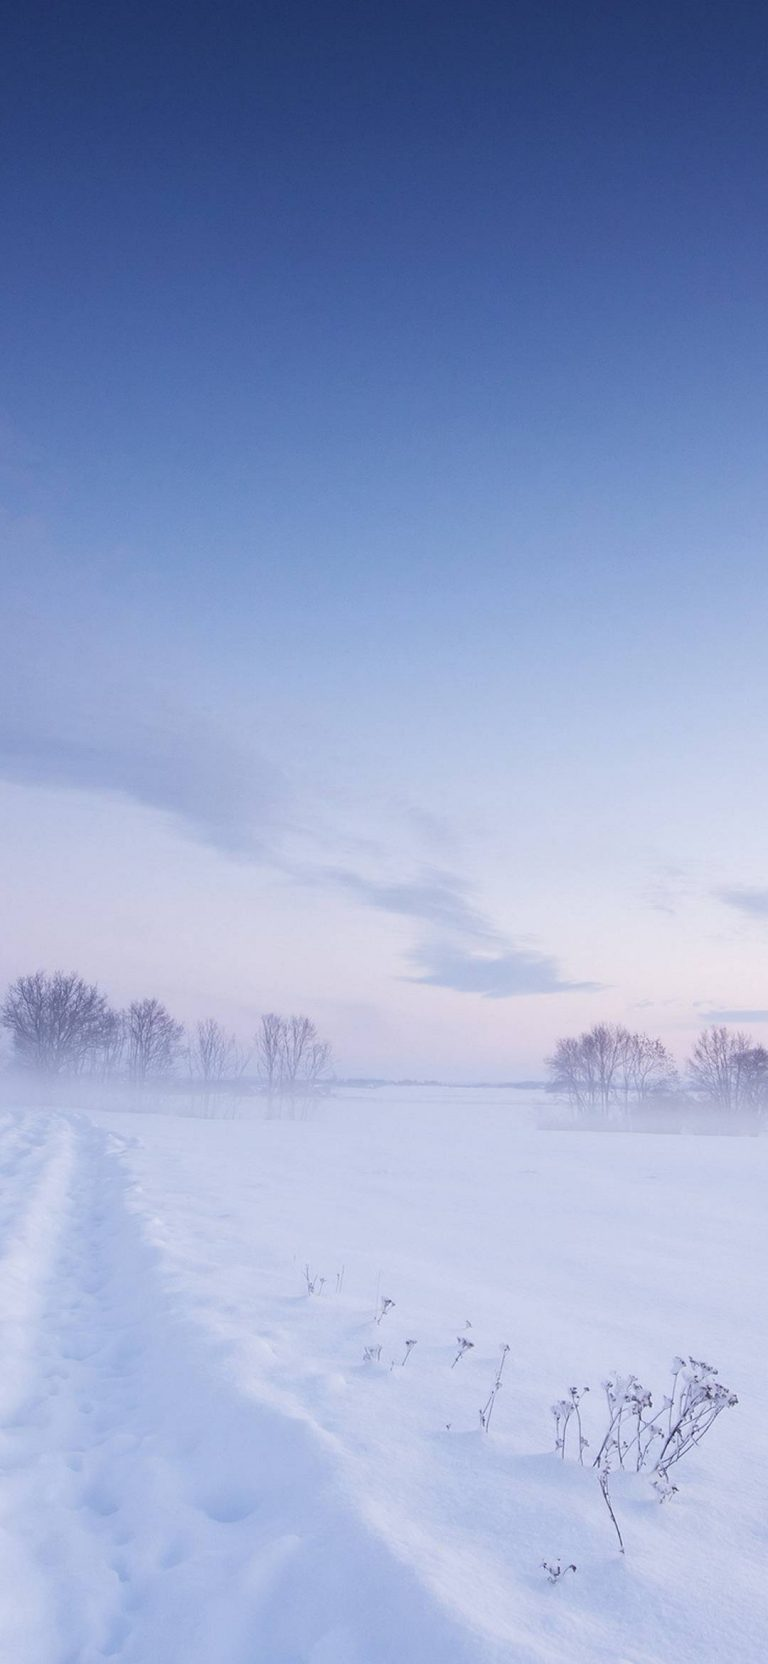 Snow Winter Field 1080x2340 768x1664